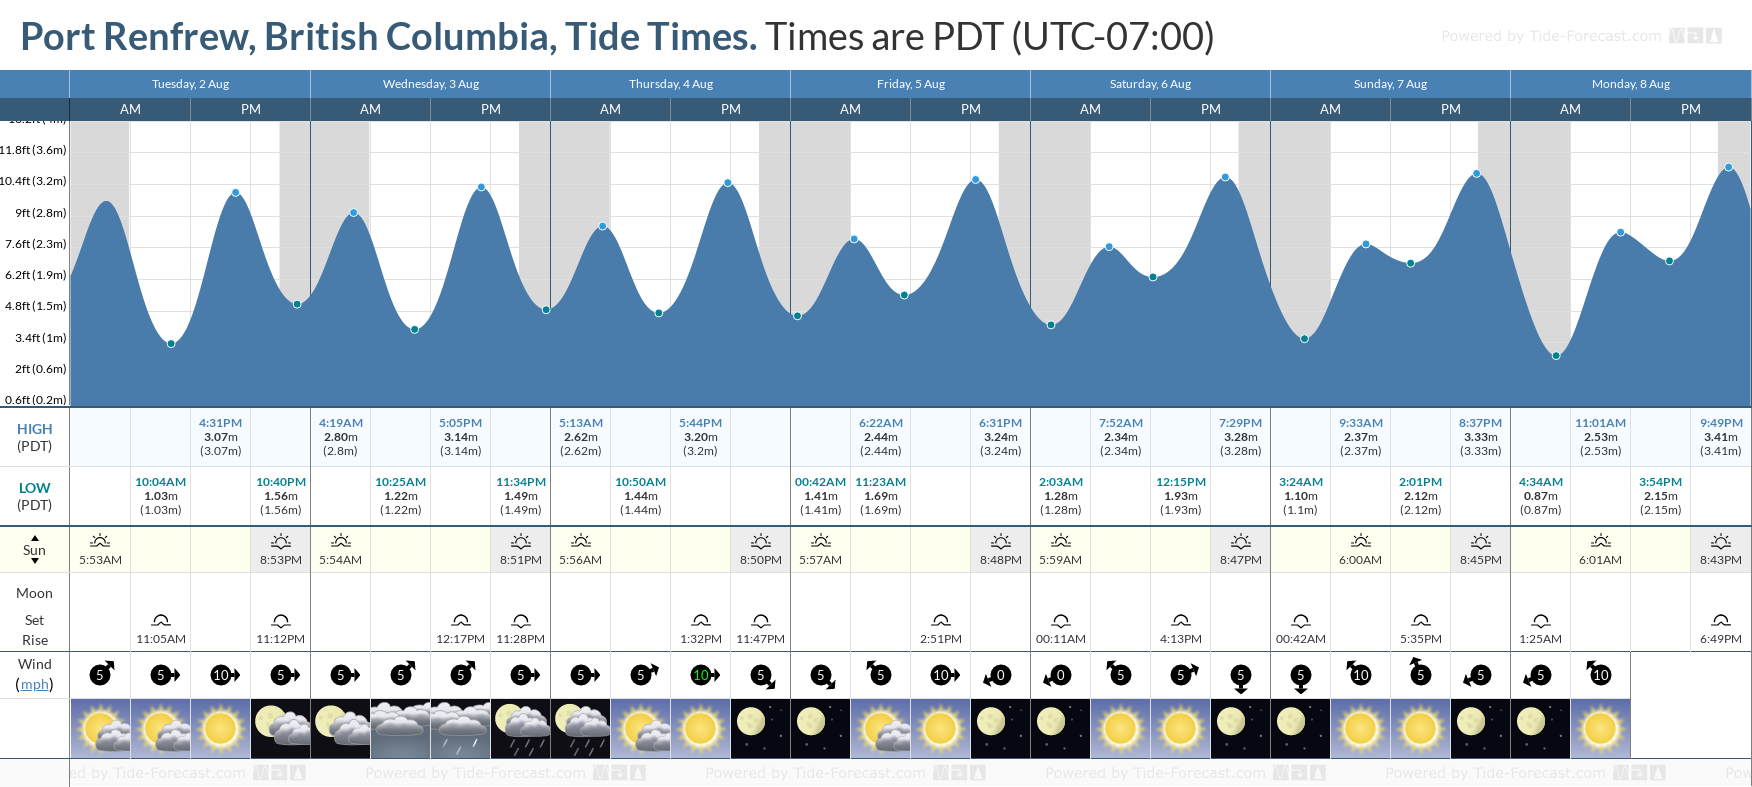 Port Renfrew, British Columbia Tide Chart including high and low tide tide times for the next 7 days